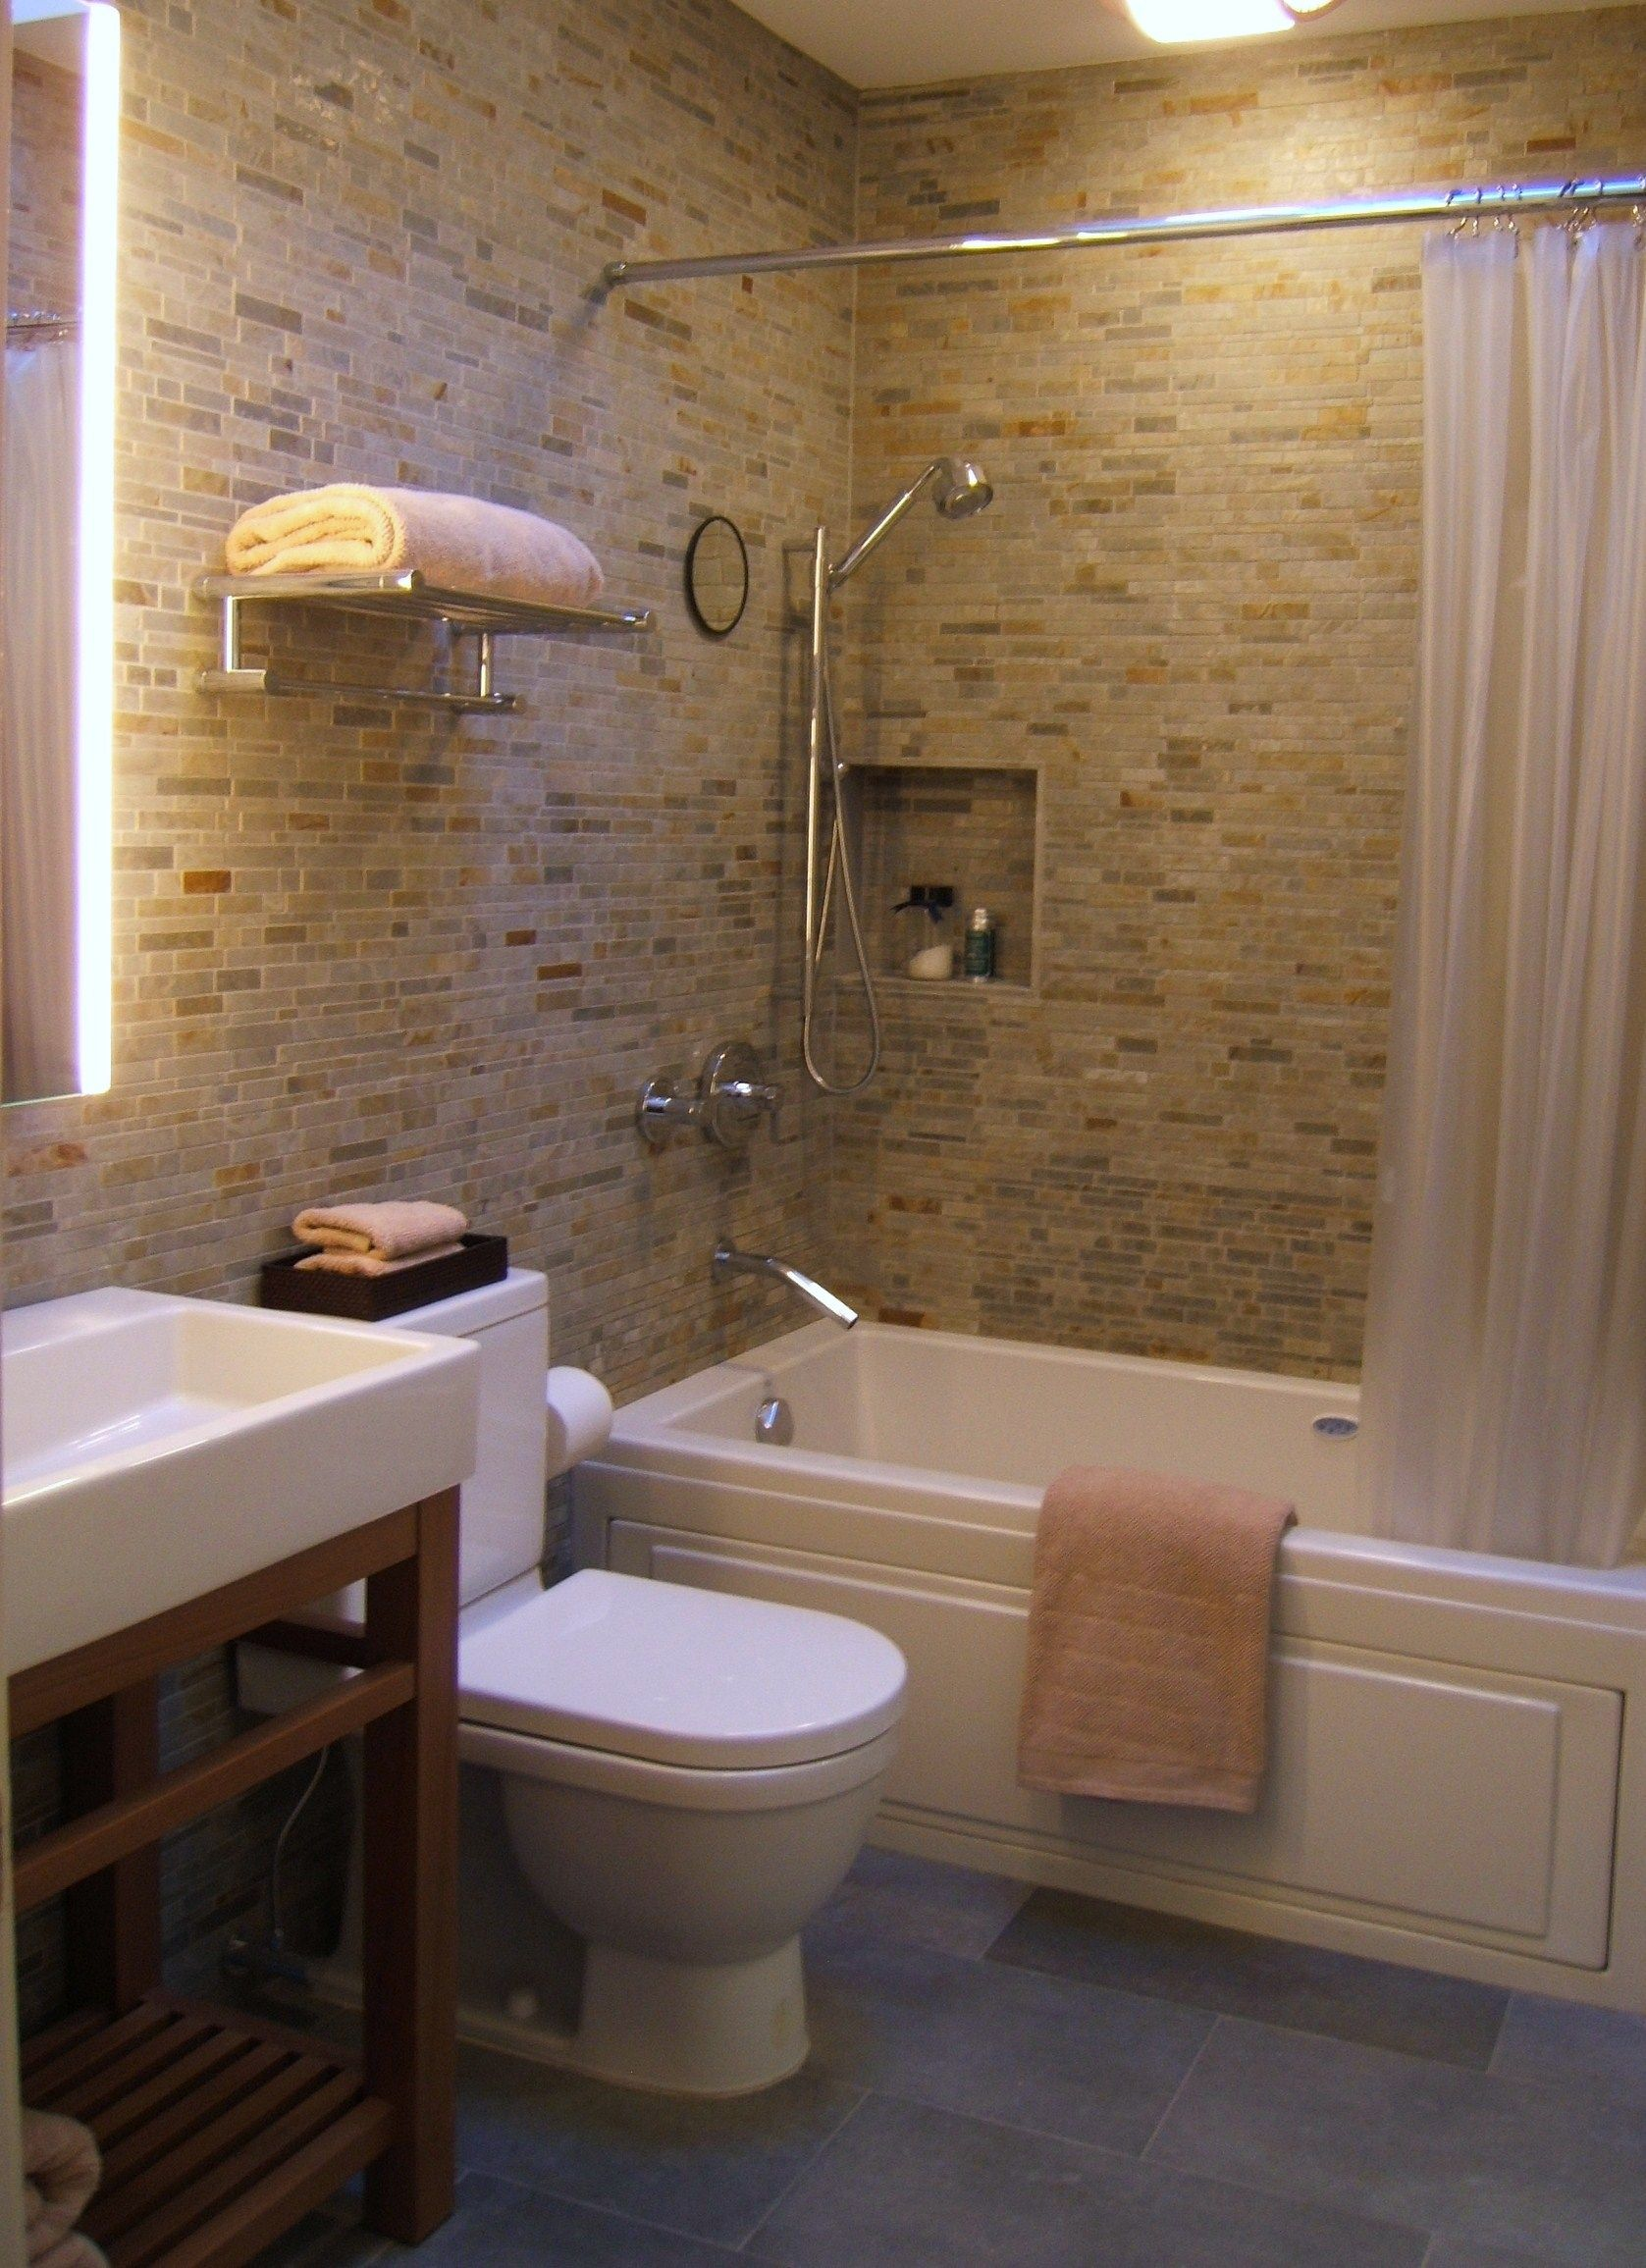 Pin by Amy Wages on Transitional Bathroom Inspiration | Small bathroom layout, Budget bathroom remodel, Bathroom layout